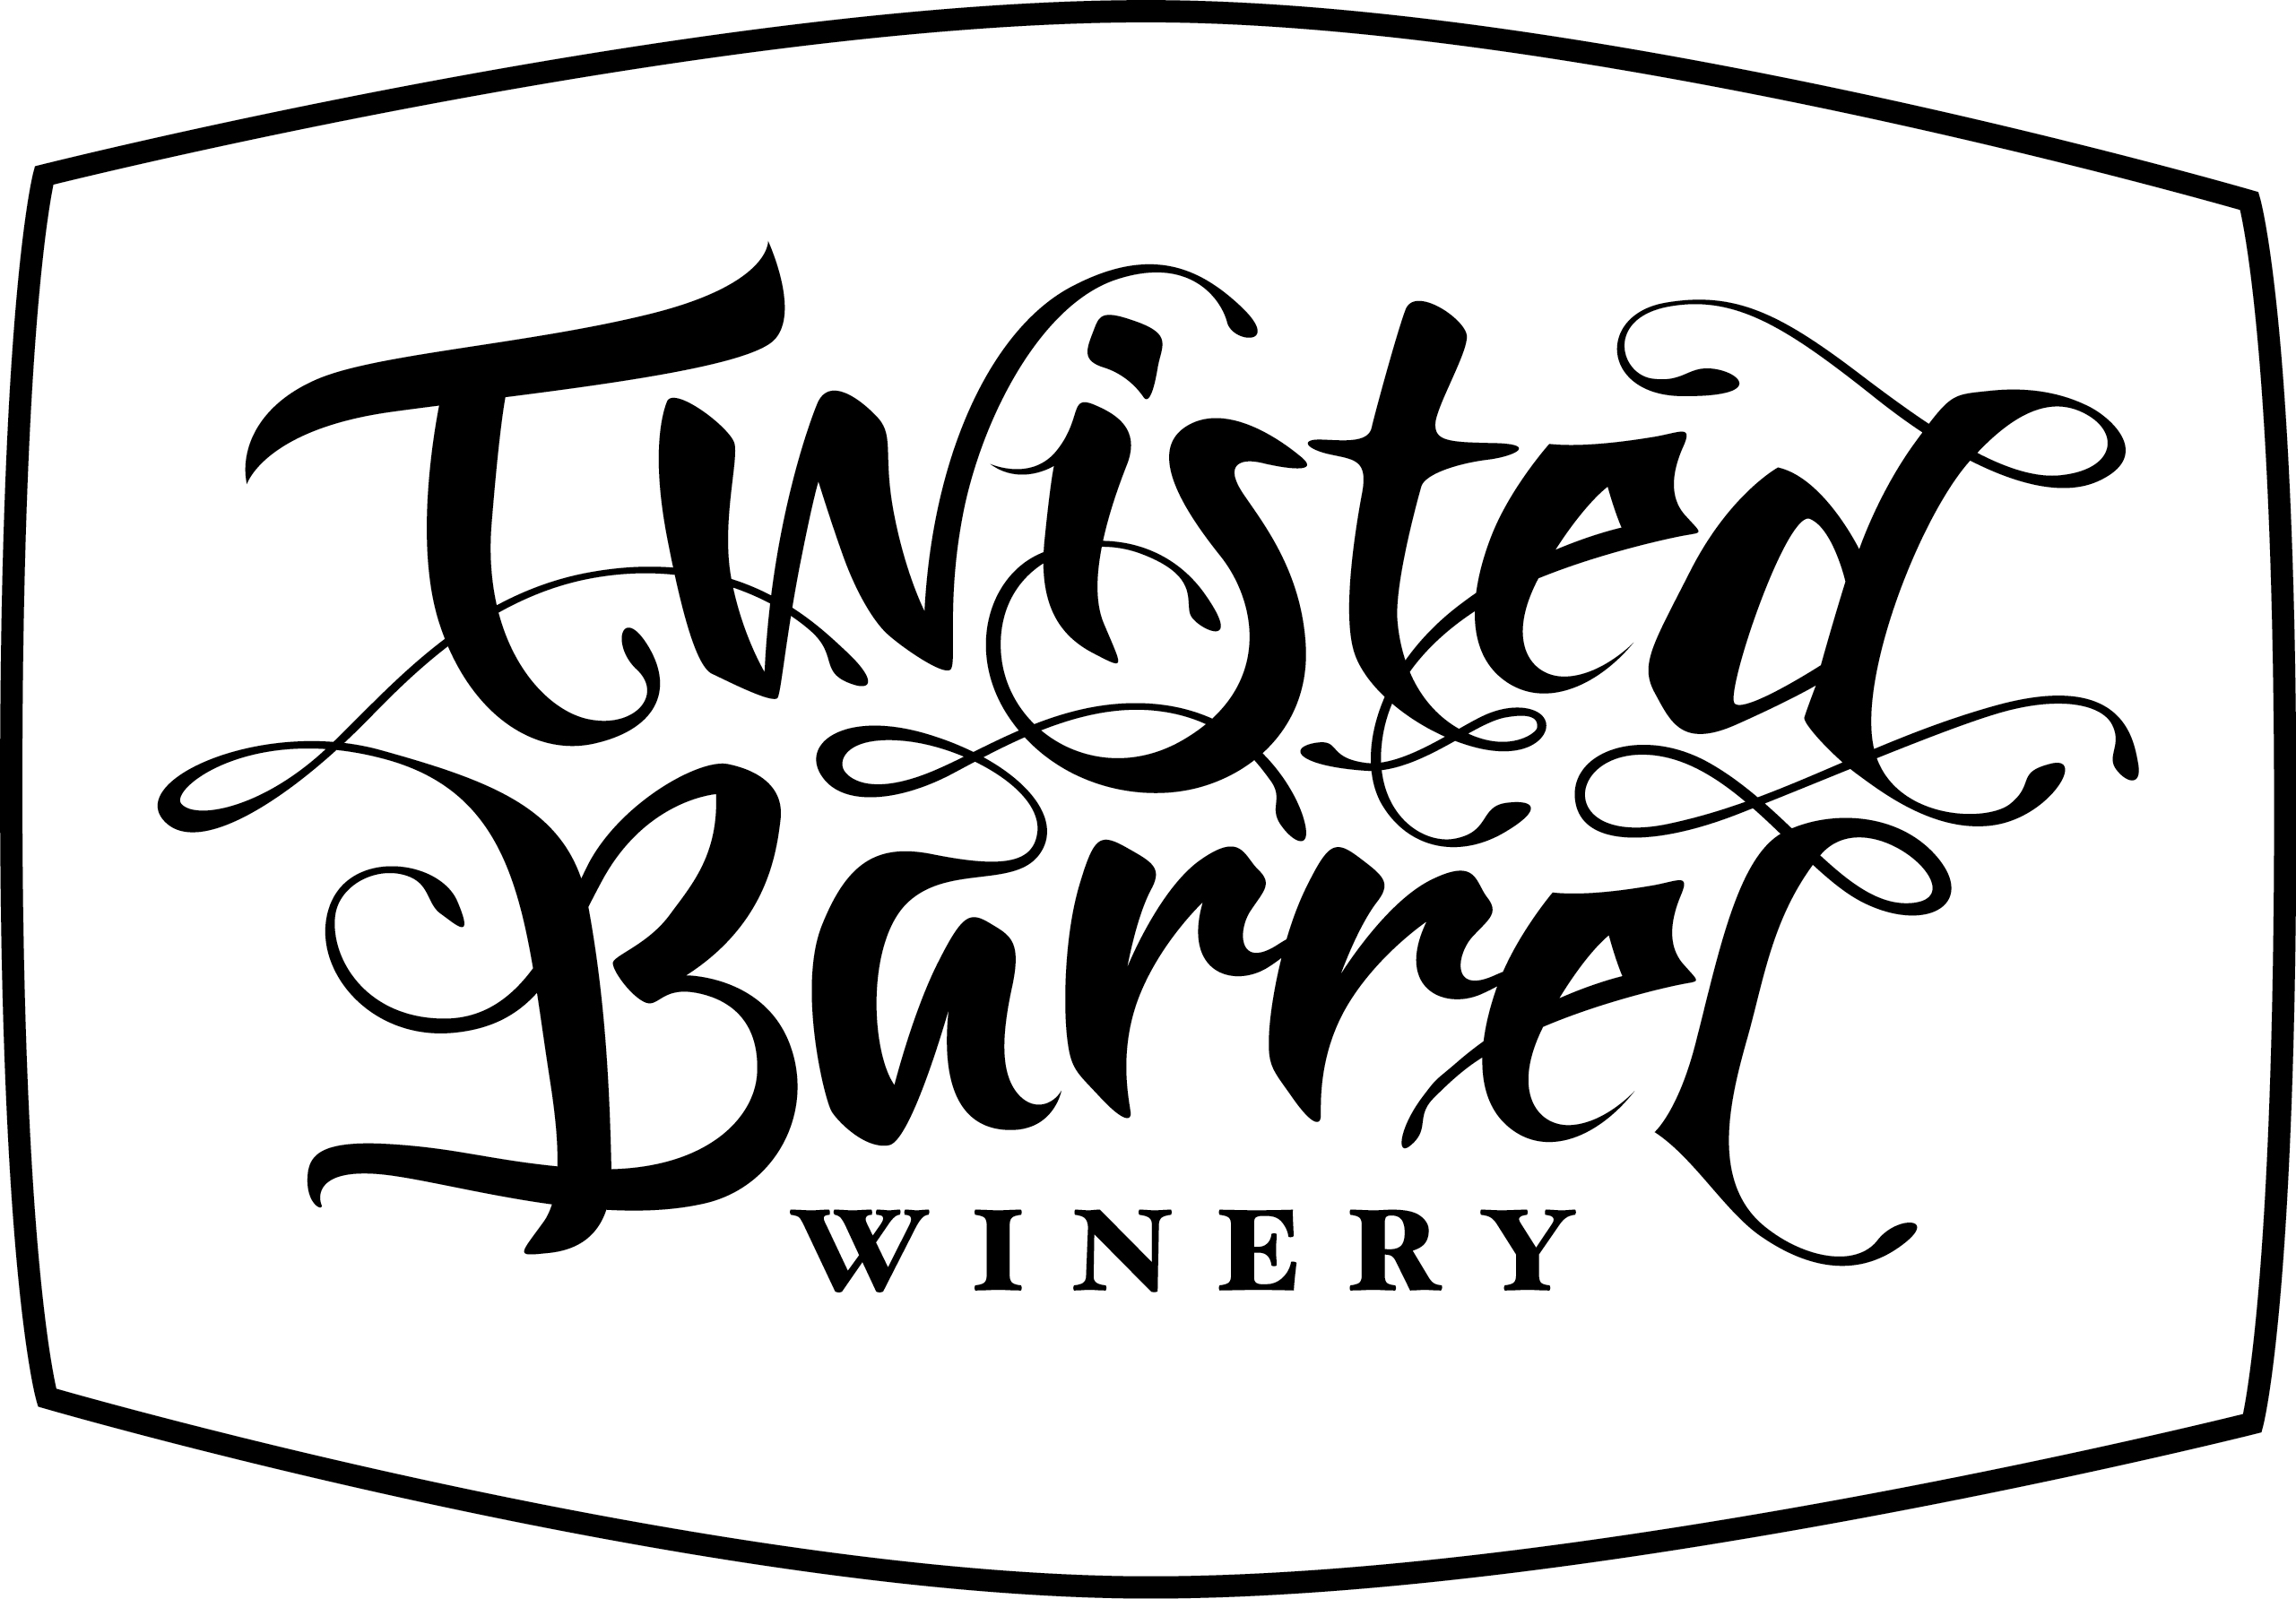 Twisted Barrel Winery